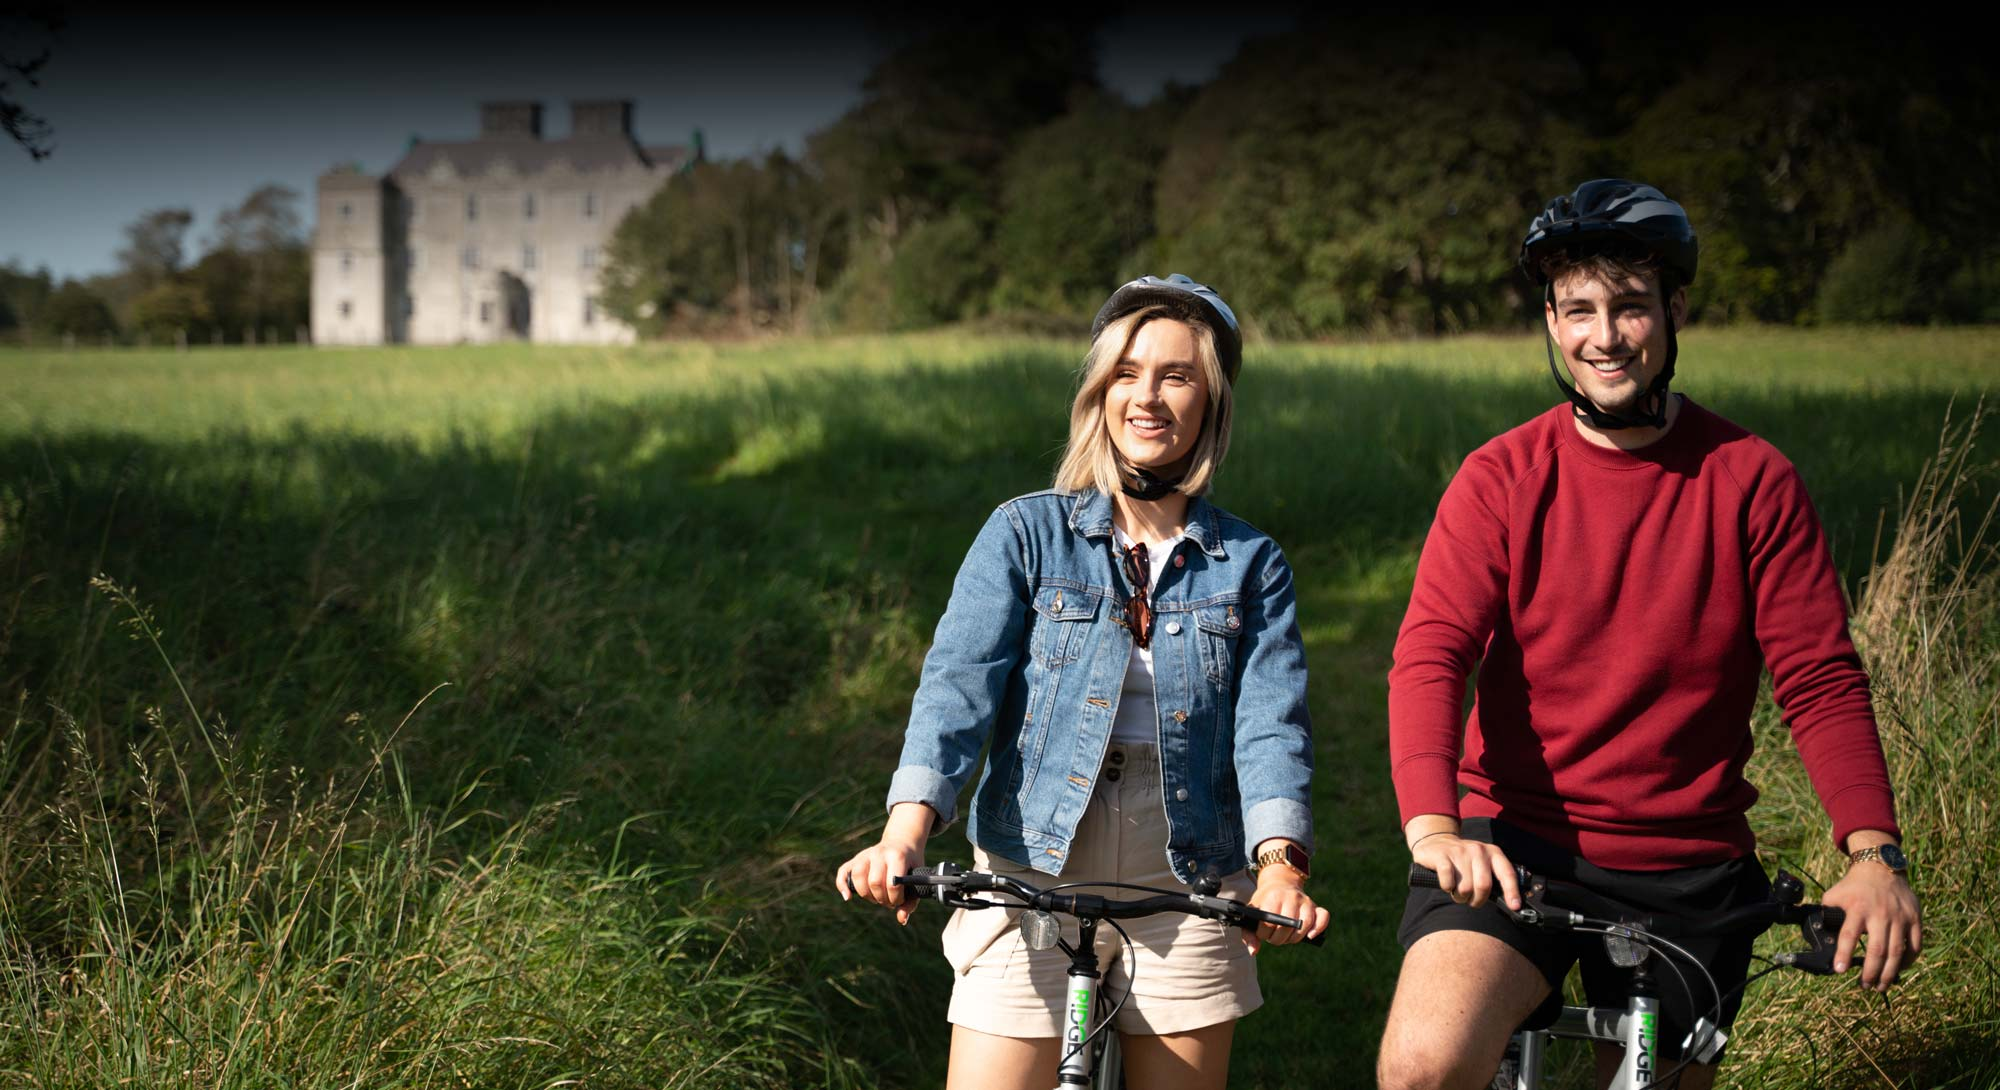 Explore Ireland's Hidden Heartland by Bicycle - Dick's Bike Hire